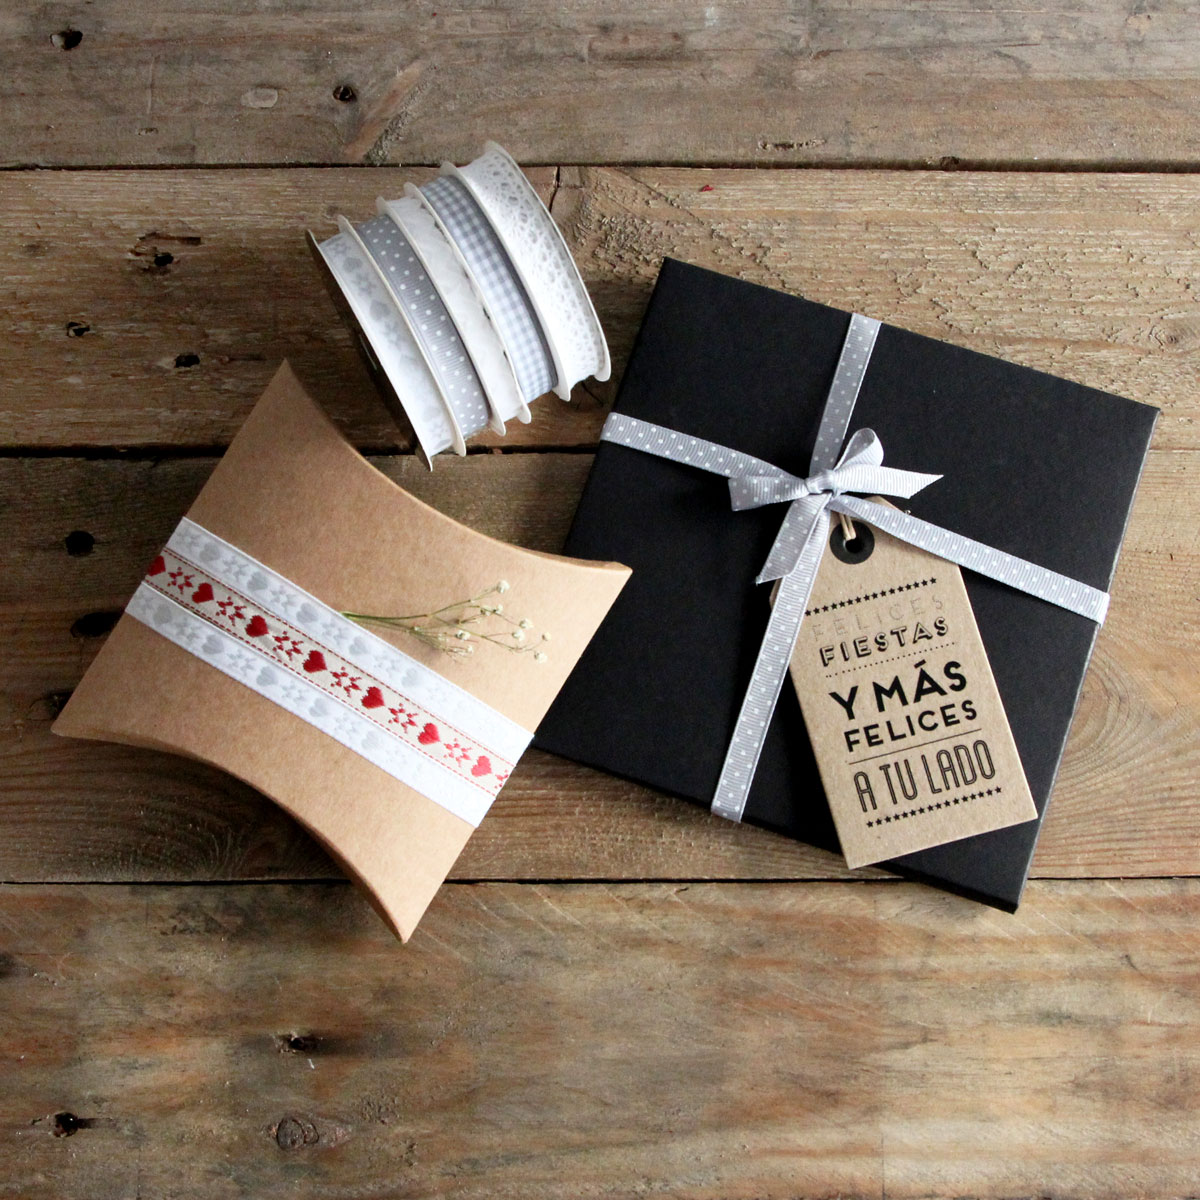 Mr_wonderful_shop_decoracion_navidad_2014_0105